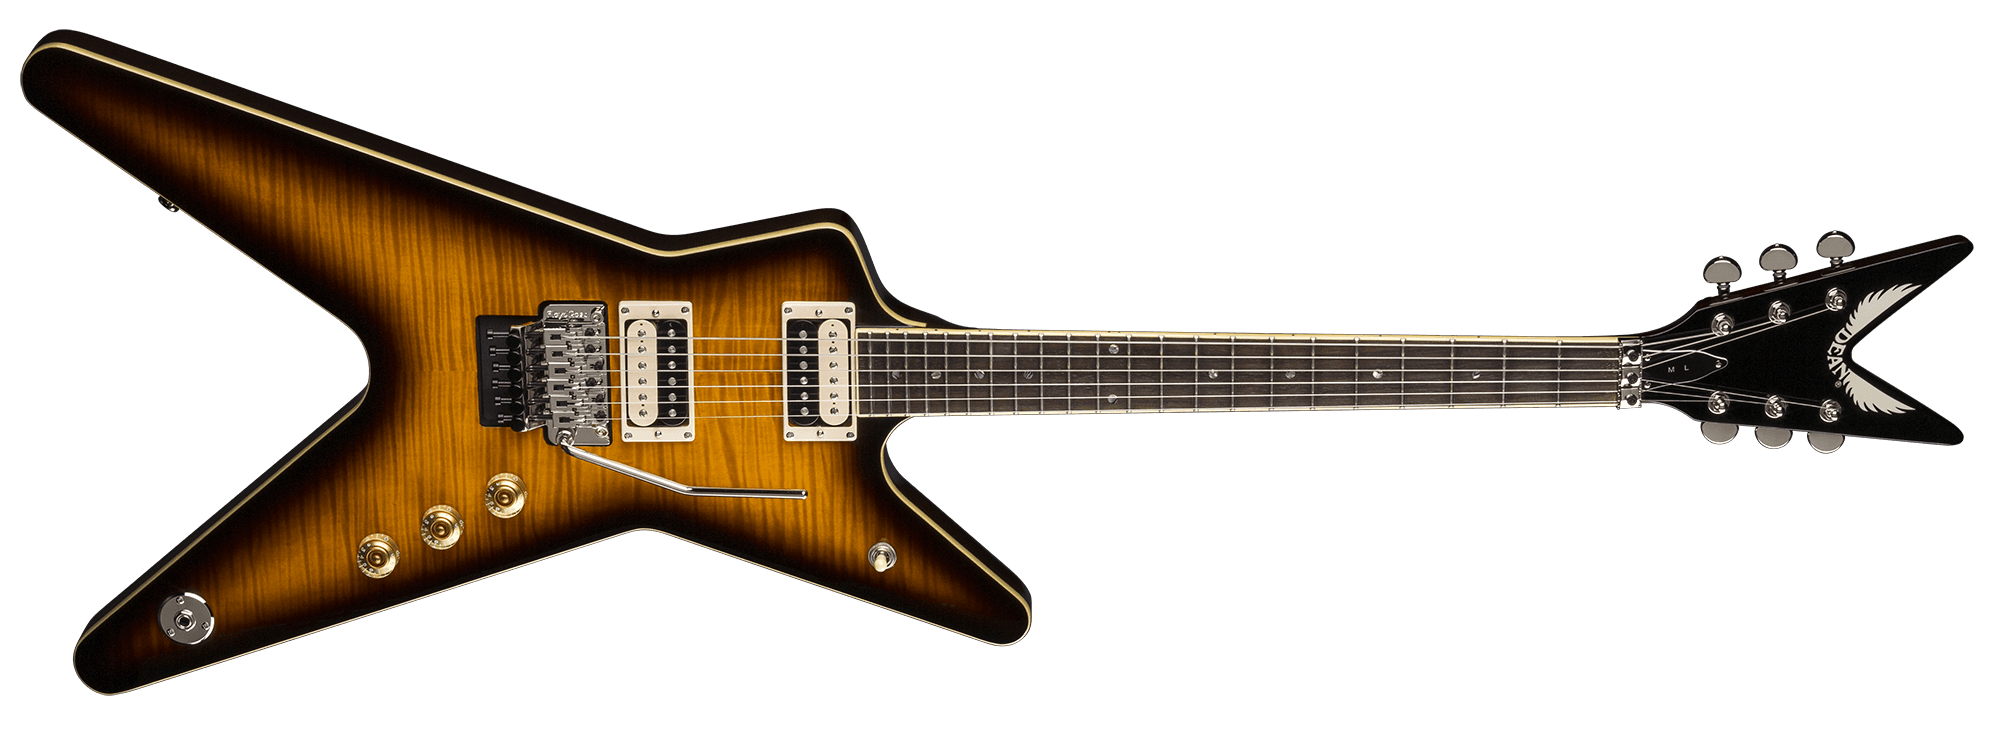 wiring diagram dean guitar free download wiring diagram xwiaw rh xwiaw us Three-Way Switch Wiring Guitar 2 Pickup Guitar Wiring